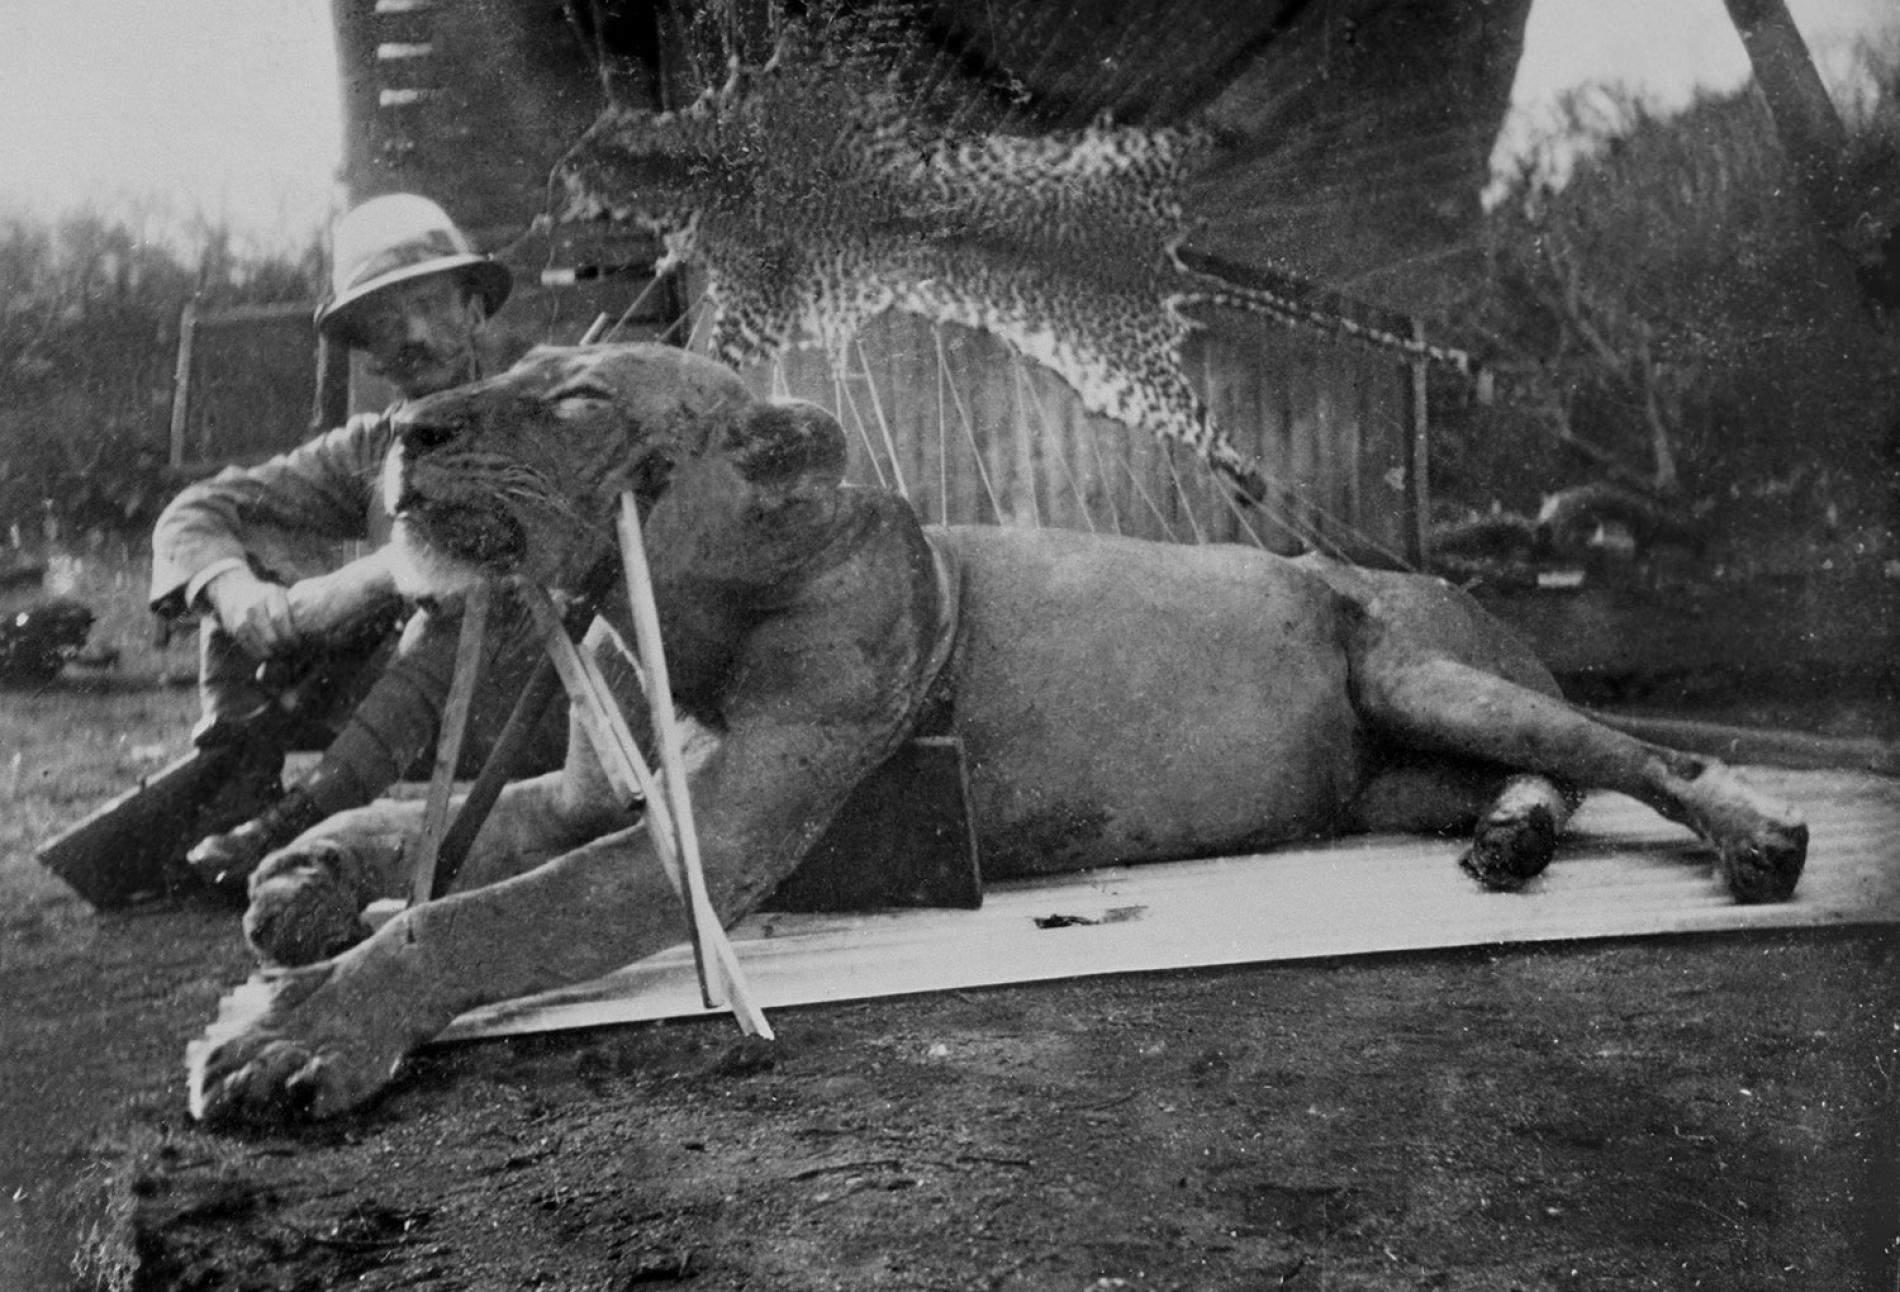 Colonel_Patterson_with_Tsavo-Lion.jpg